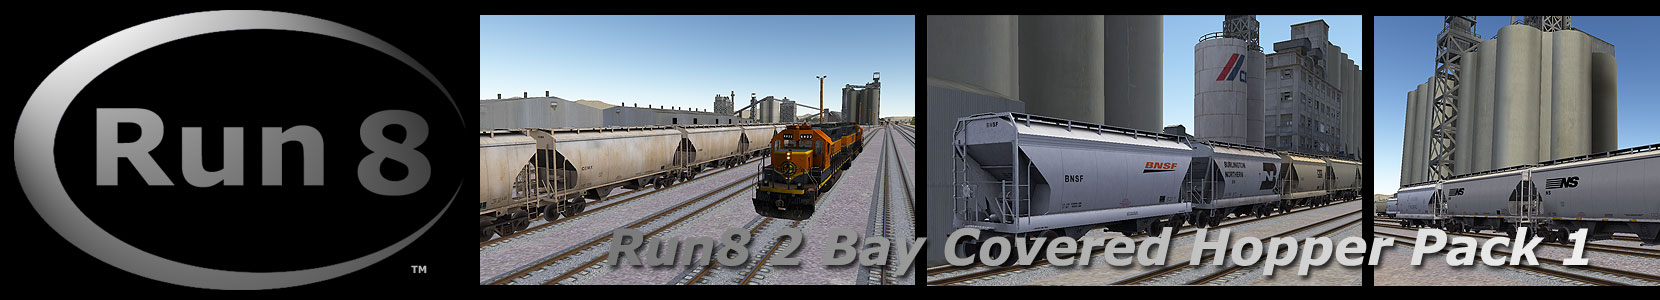 Run8 Train Simulator 2 BAY COVERED HOPPERS PACK 1